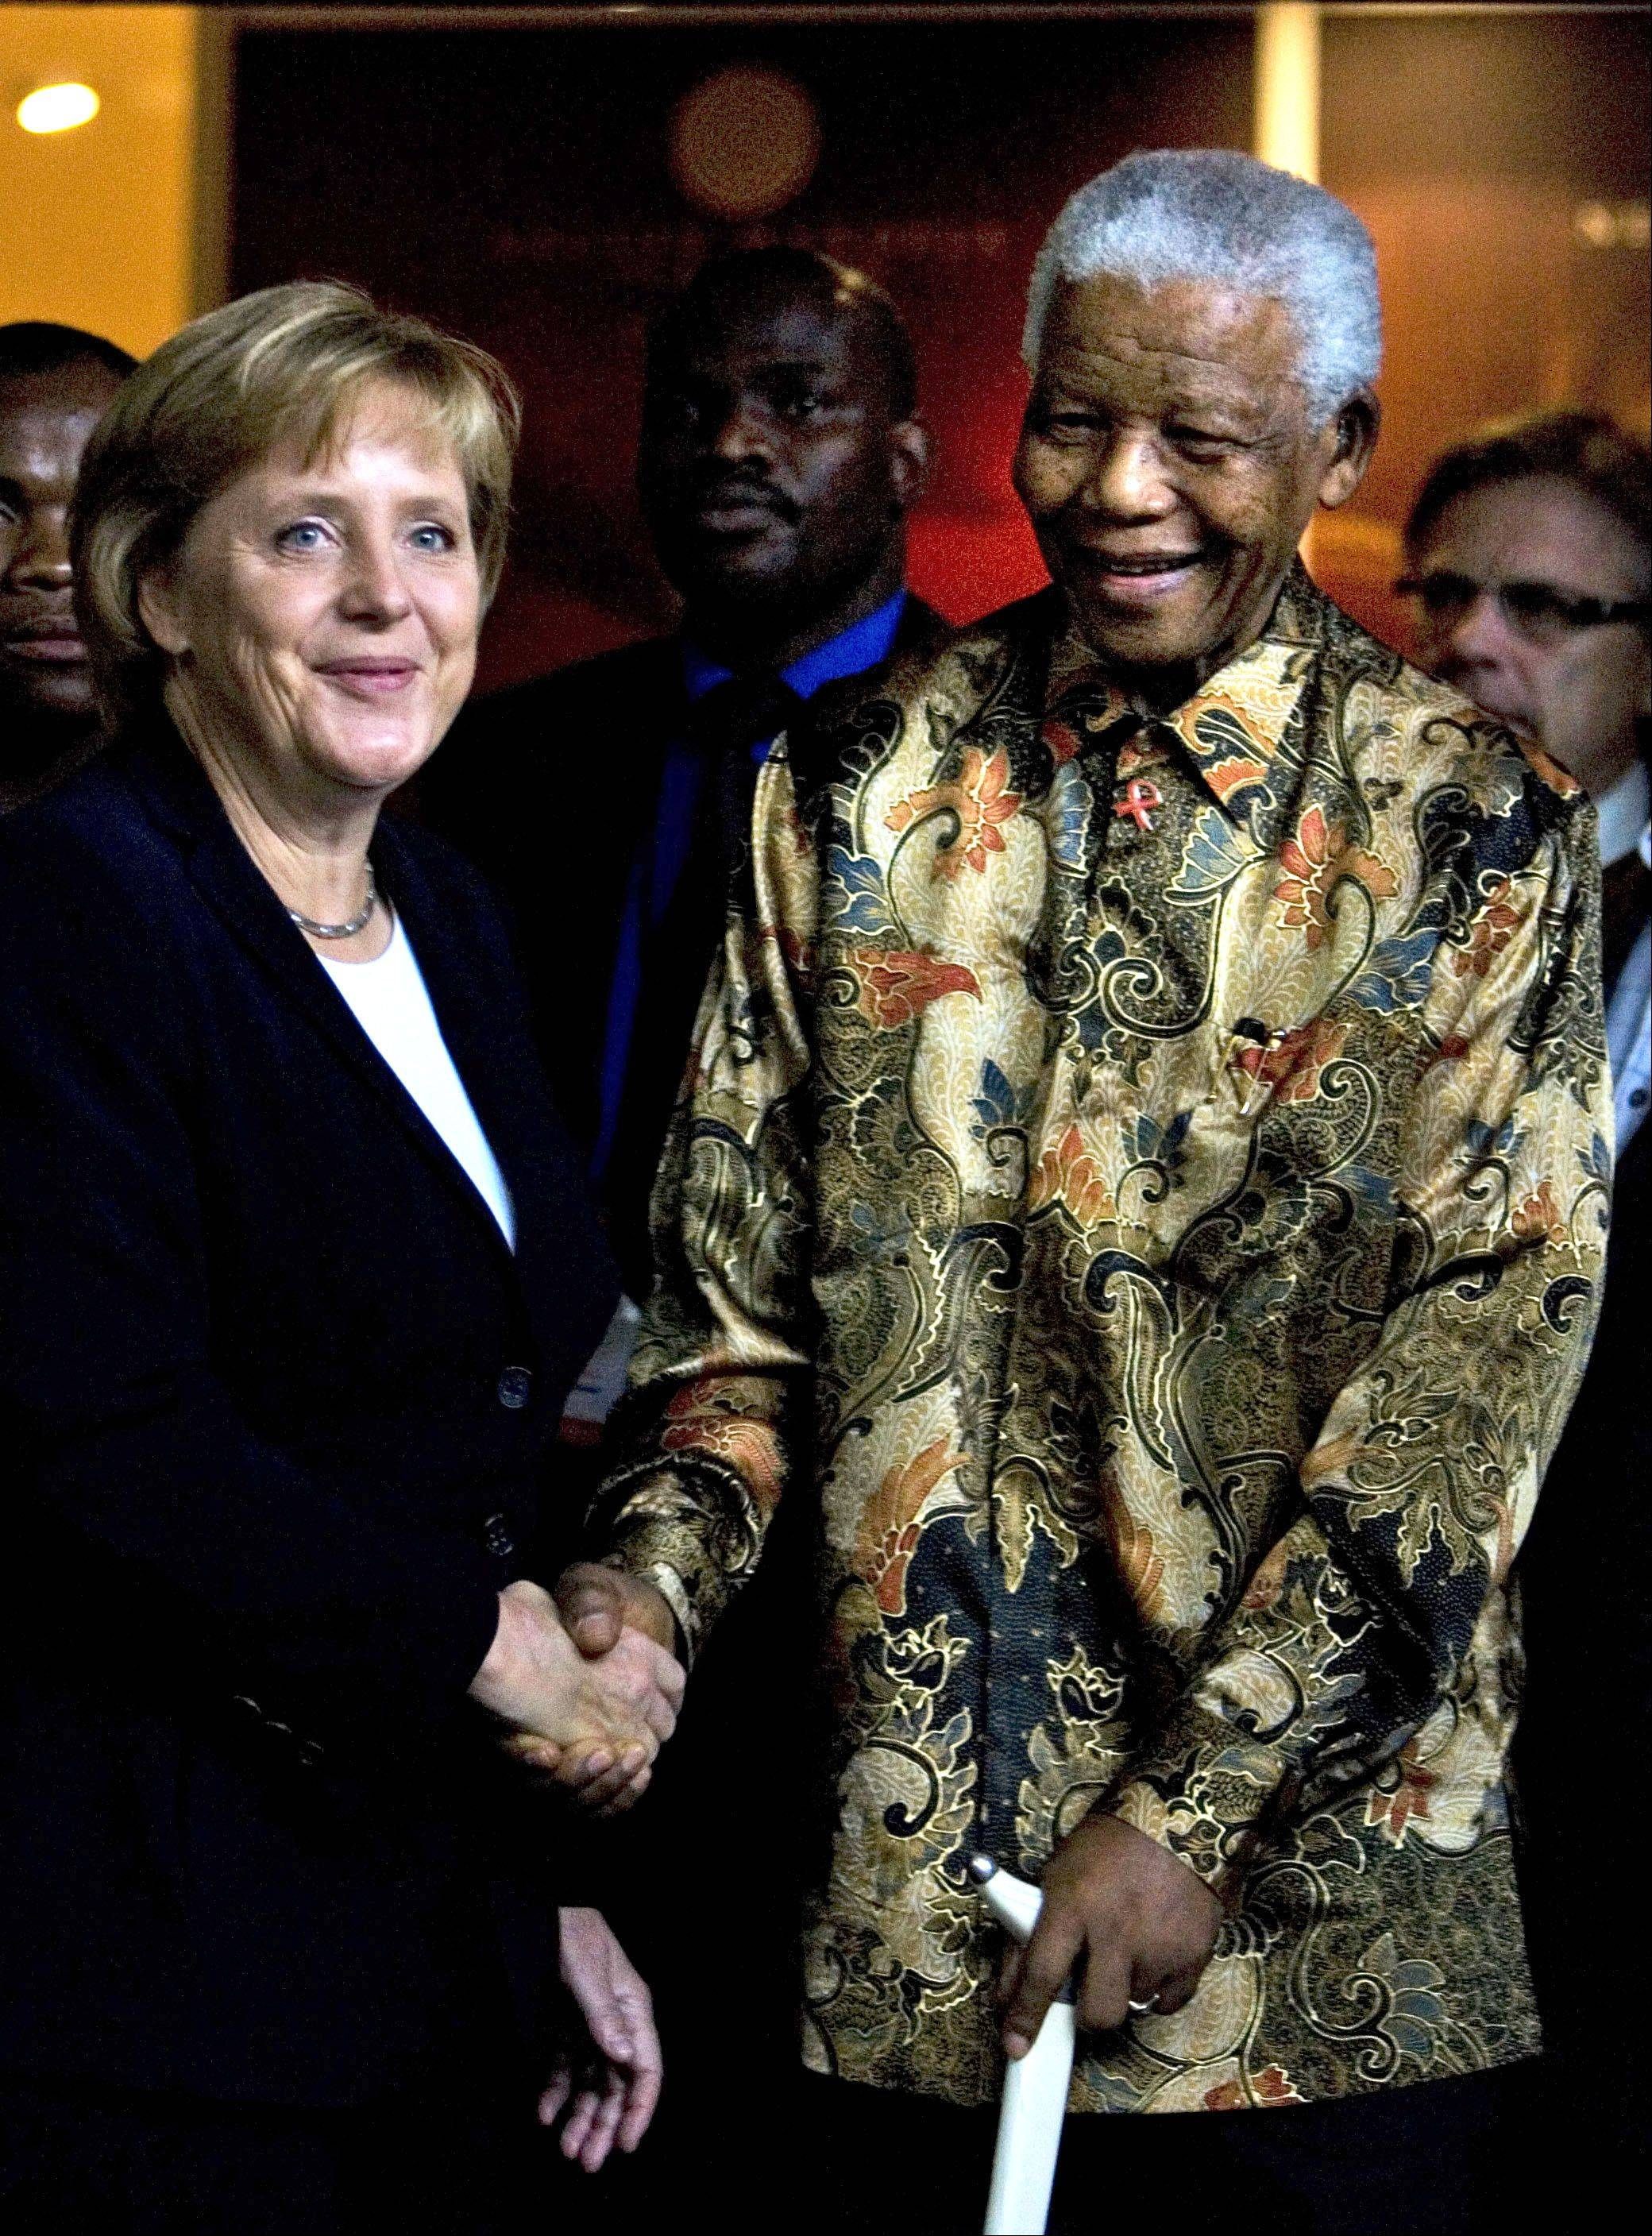 German Chancellor Angela Merkel, left, and former South African President Nelson Mandela shake hands at the Nelson Mandela Foundation building in Johannesburg, South Africa, Oct. 6, 2007.